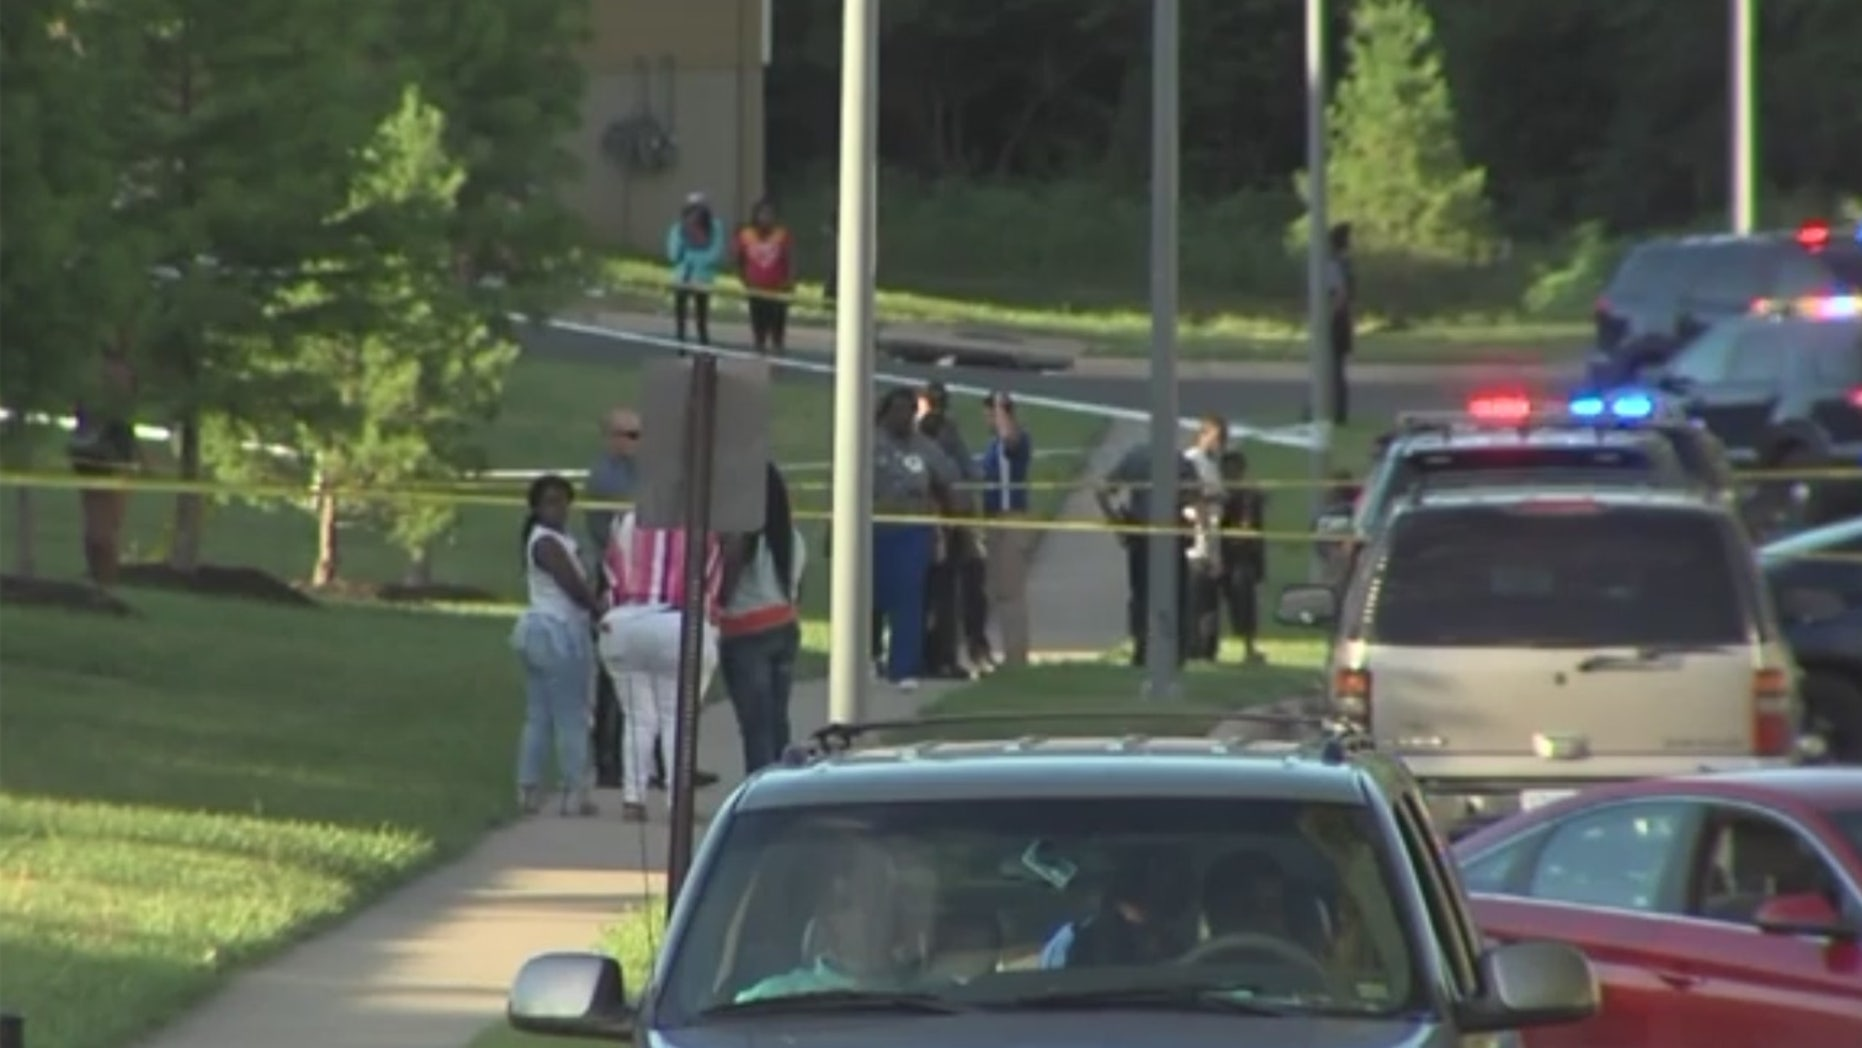 A young child has been hospitalized after they were shot by another child at a Kansas City playground.